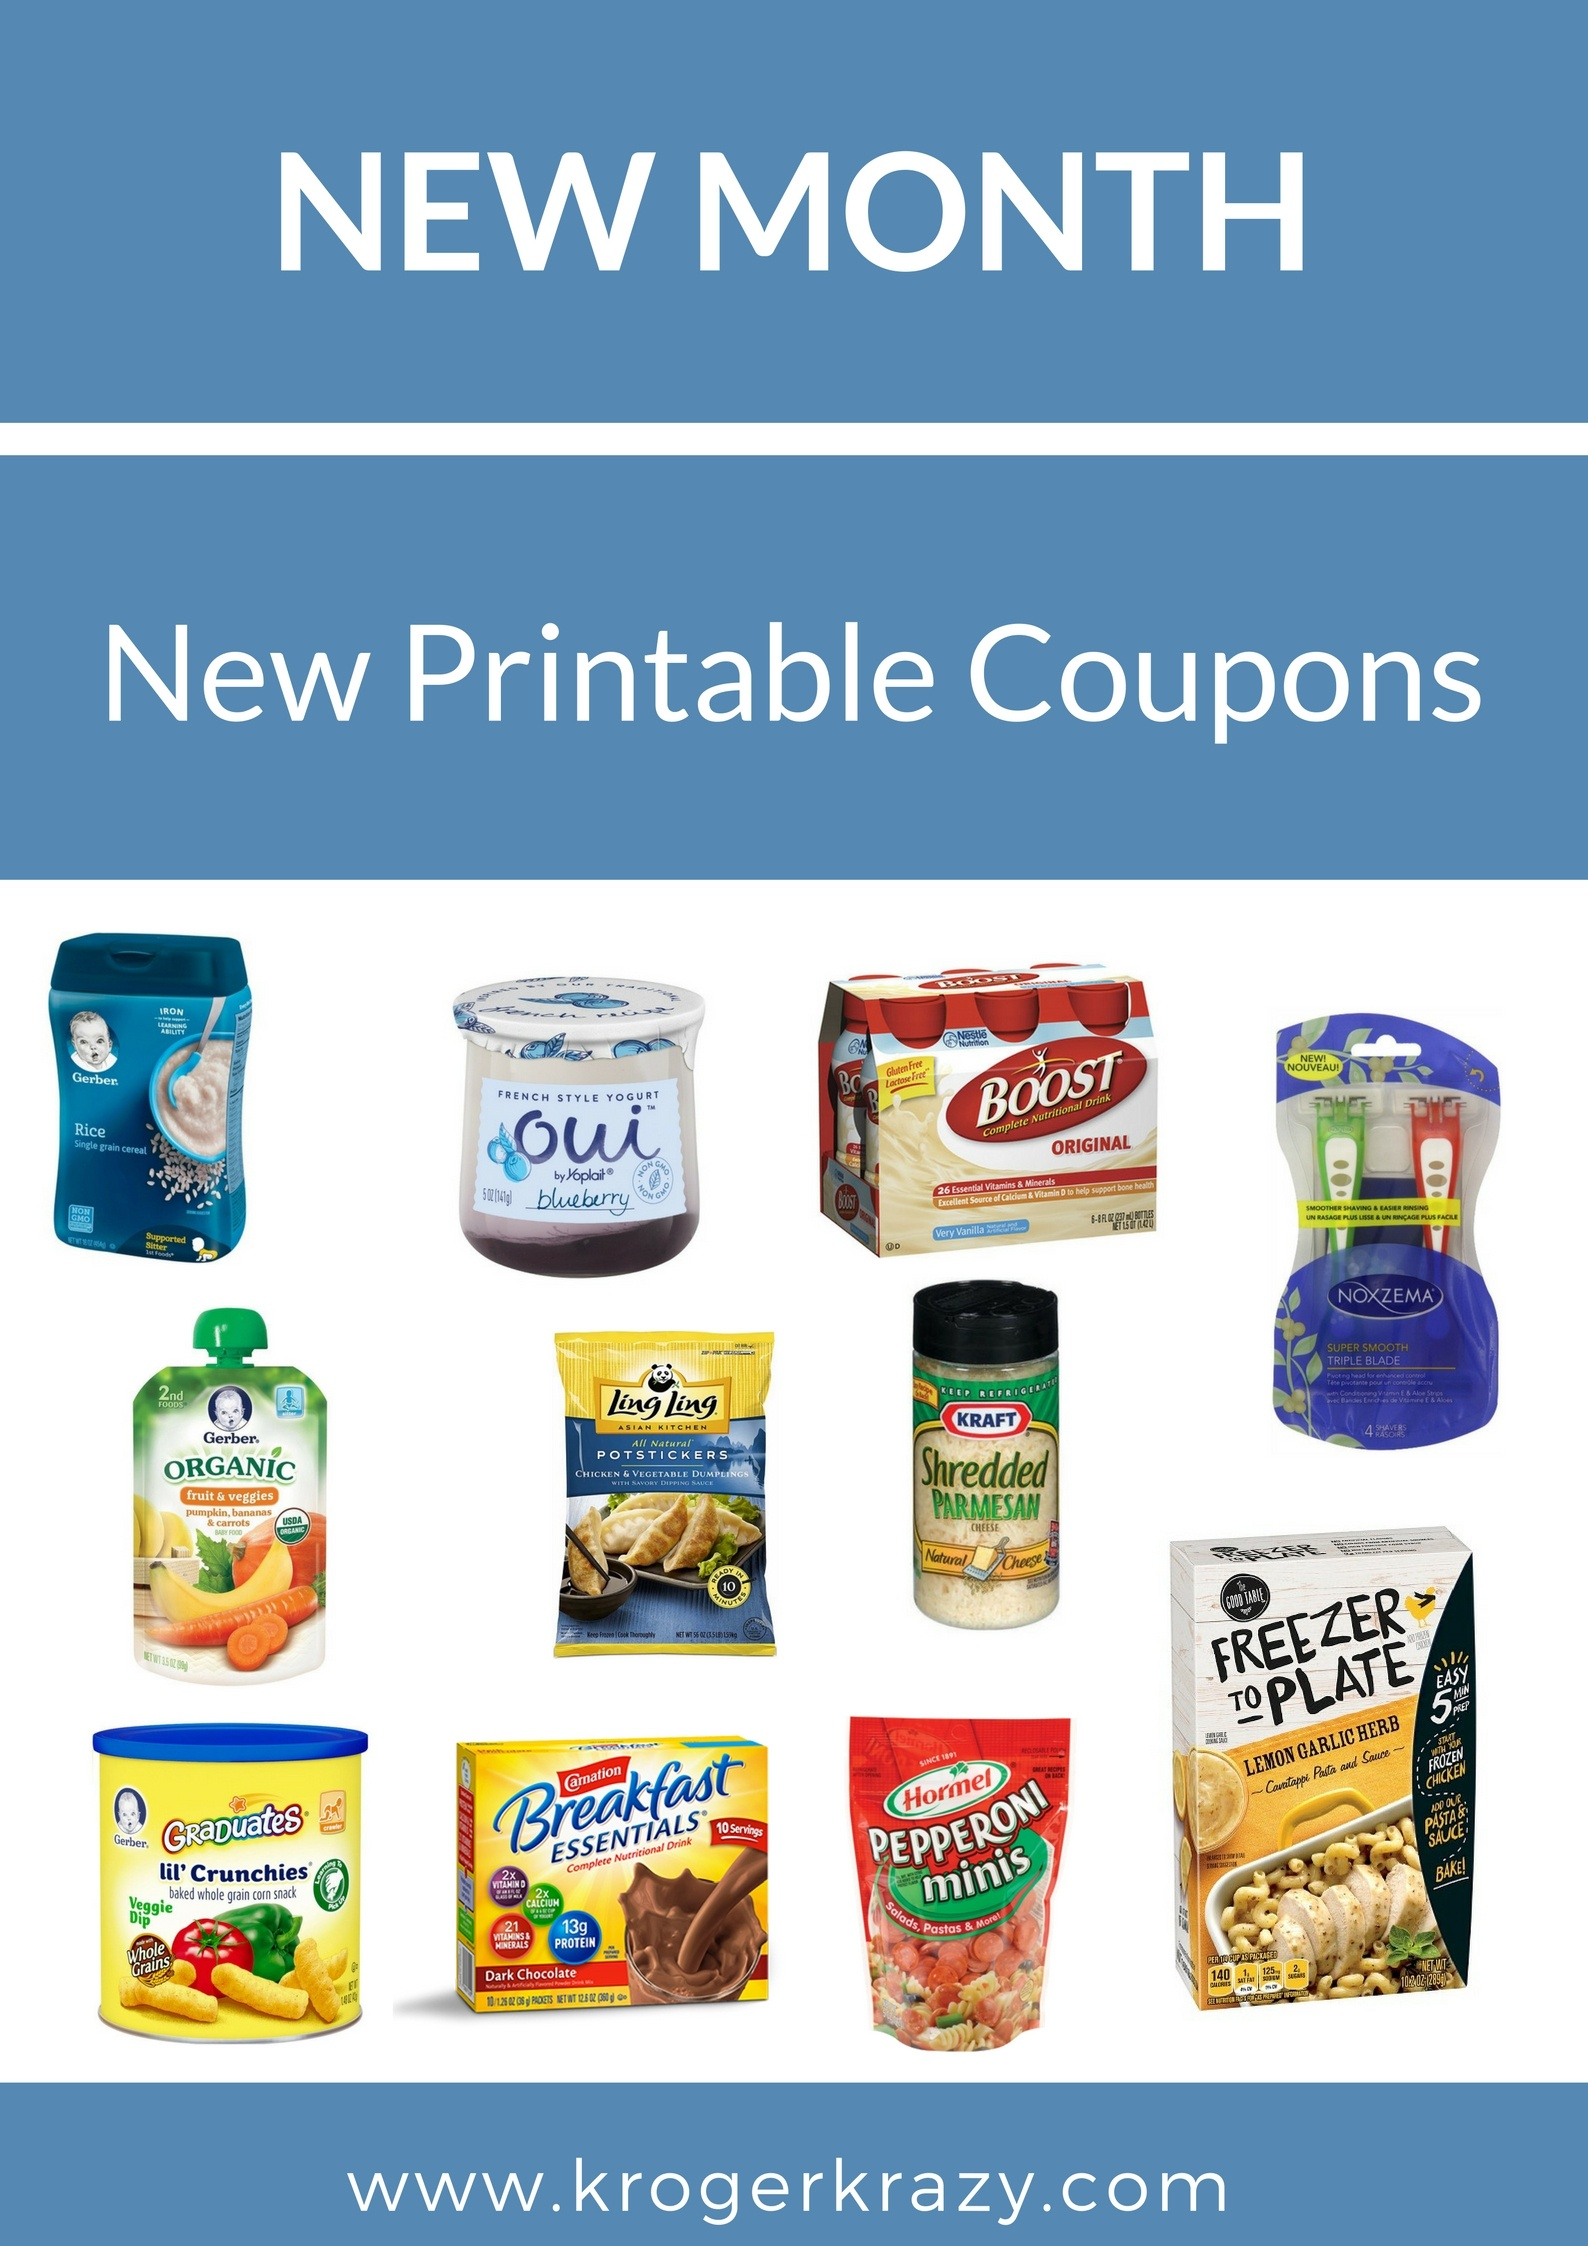 New Month! New Printable Coupons! Kraft, Post, Gerber, Noxzema - Free Printable Kraft Food Coupons